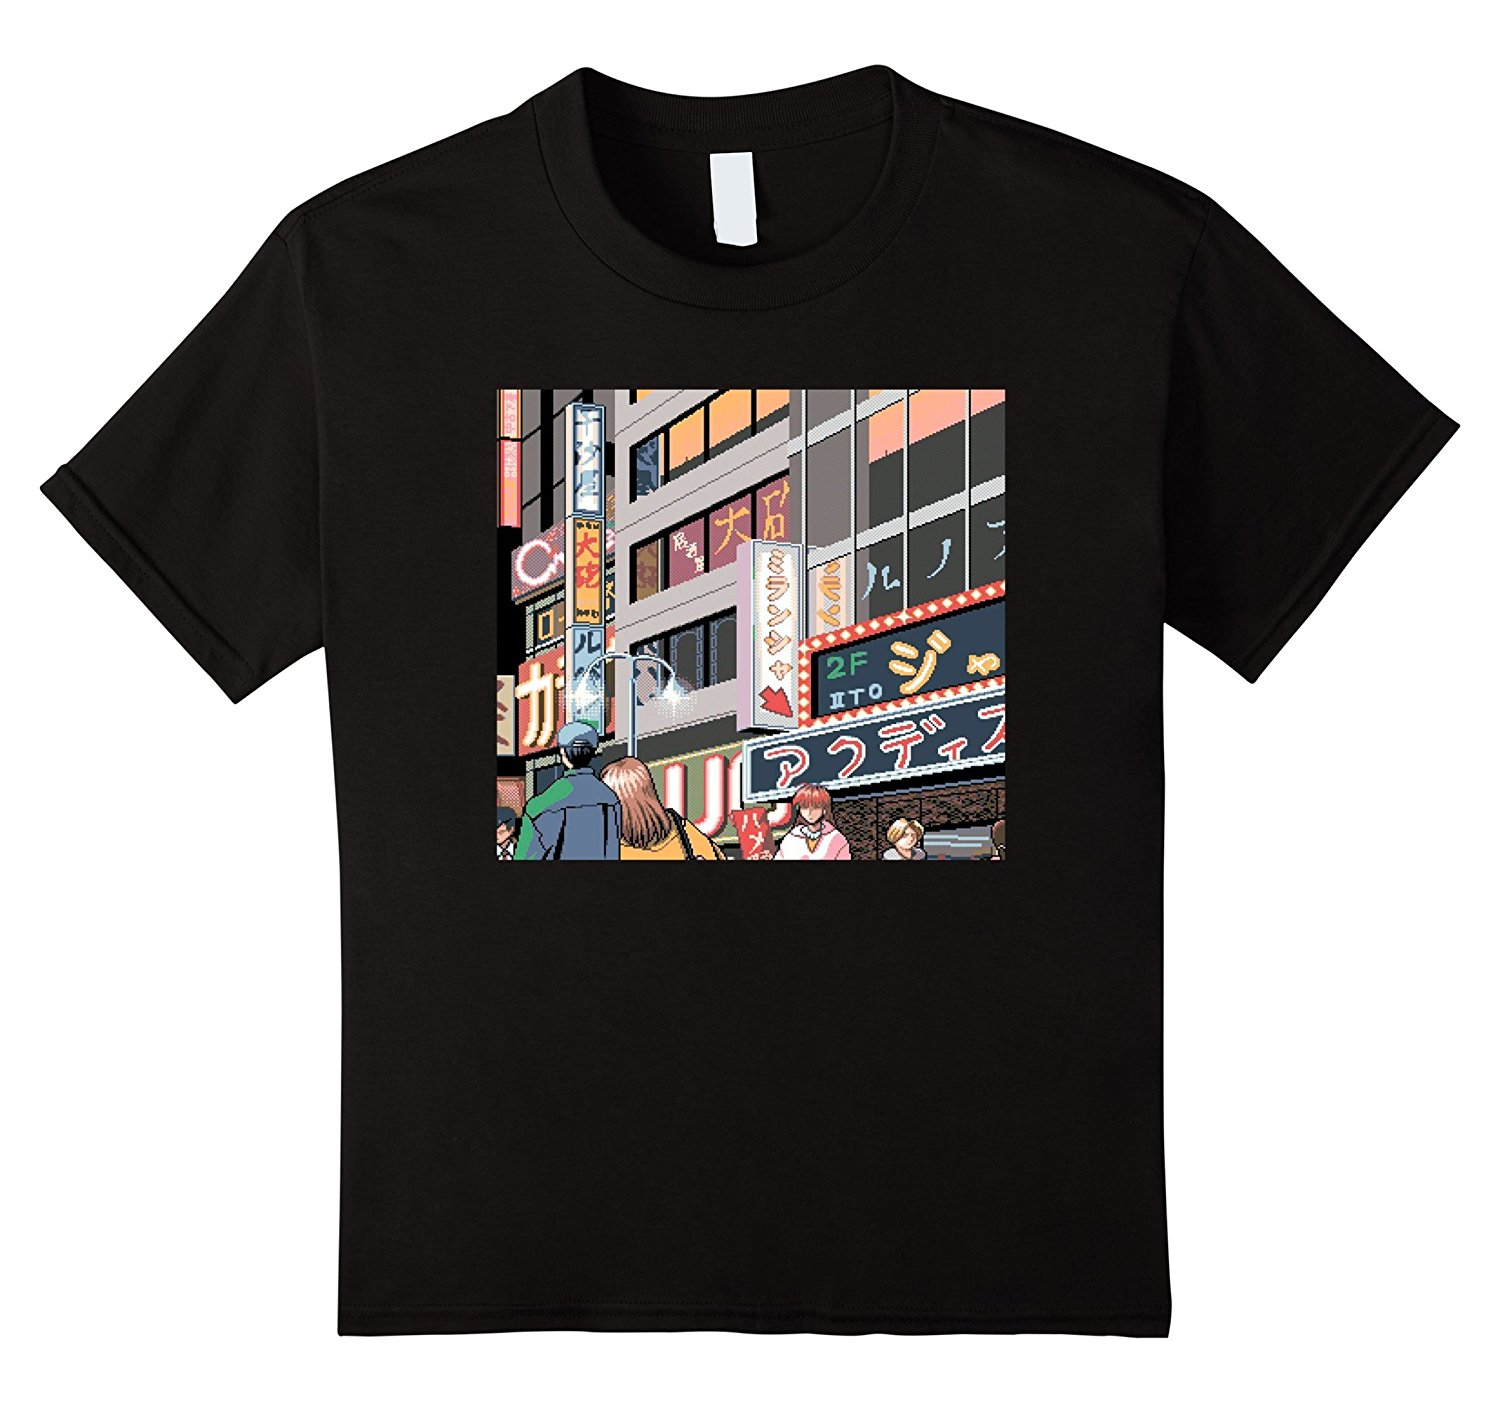 Neon Night Tokyo Japan Neon Signs Anime 8-Bit City T-Shirt